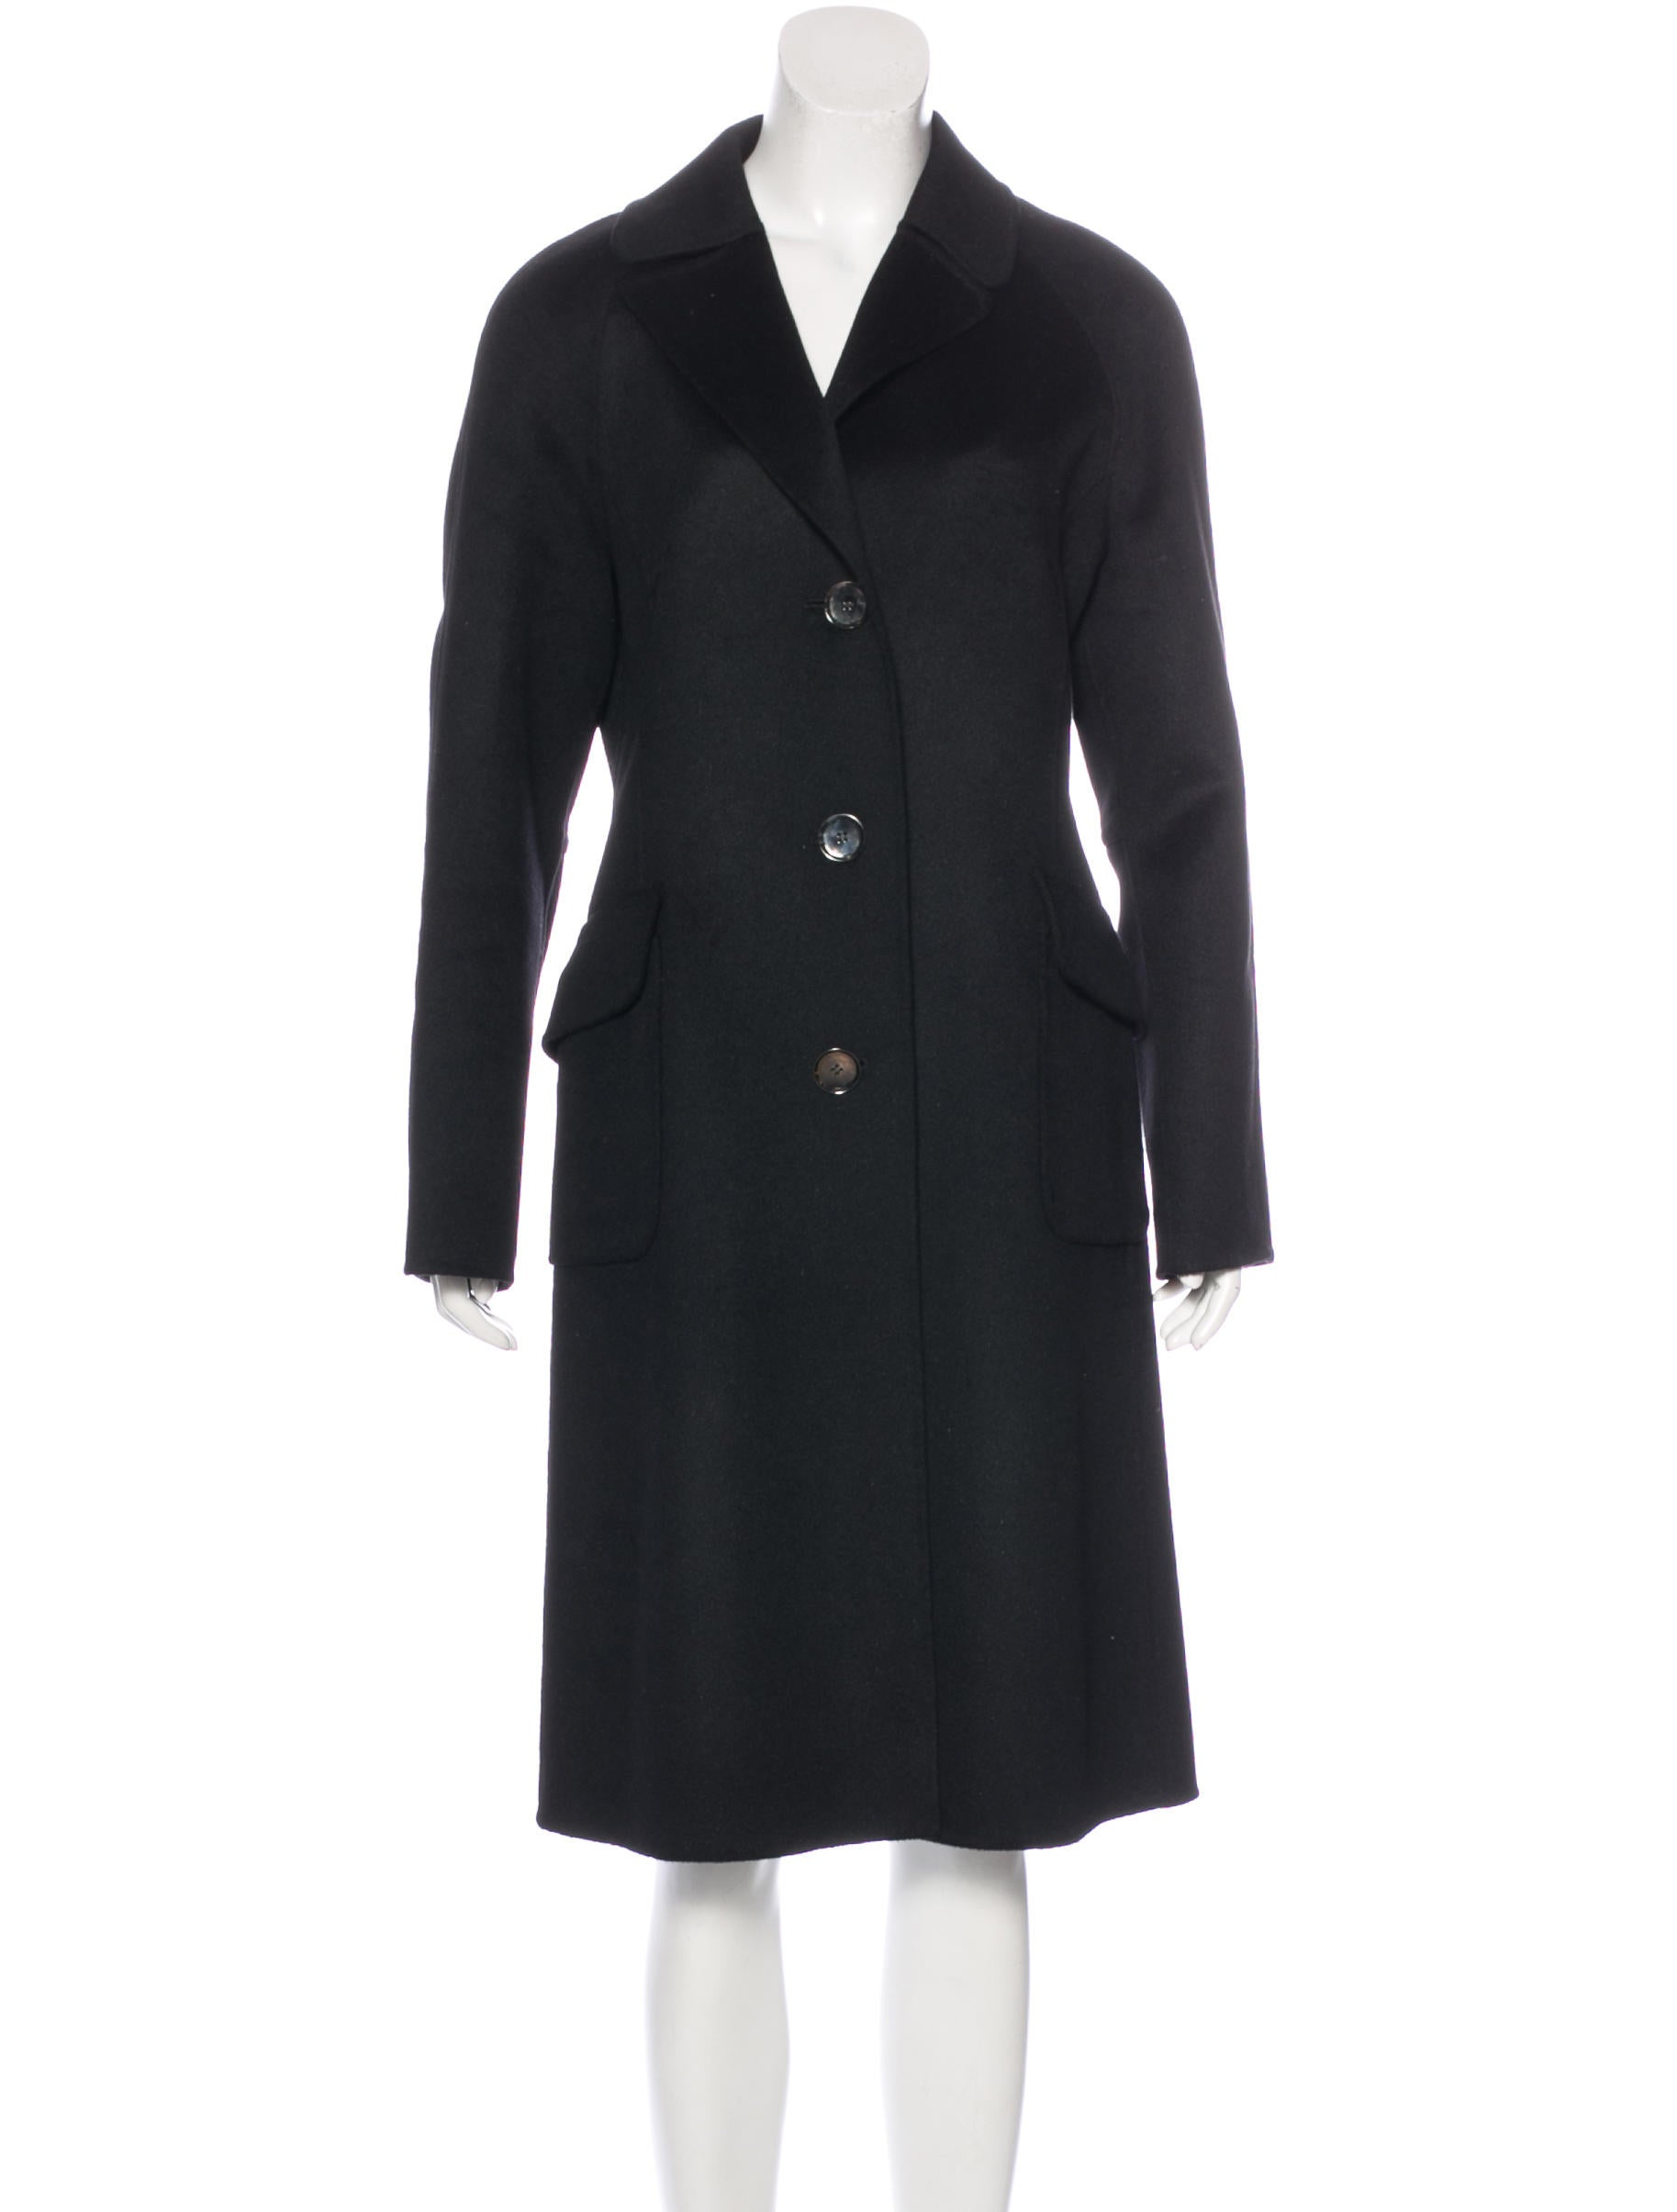 A coat is a garment worn by either sex, for warmth or fashion. Coats typically have long sleeves and are open down the front, closing by means of buttons, zippers, hook-and-loop fasteners, toggles, a belt, or a combination of some of these. Other possible features include collars, shoulder straps and hoods.